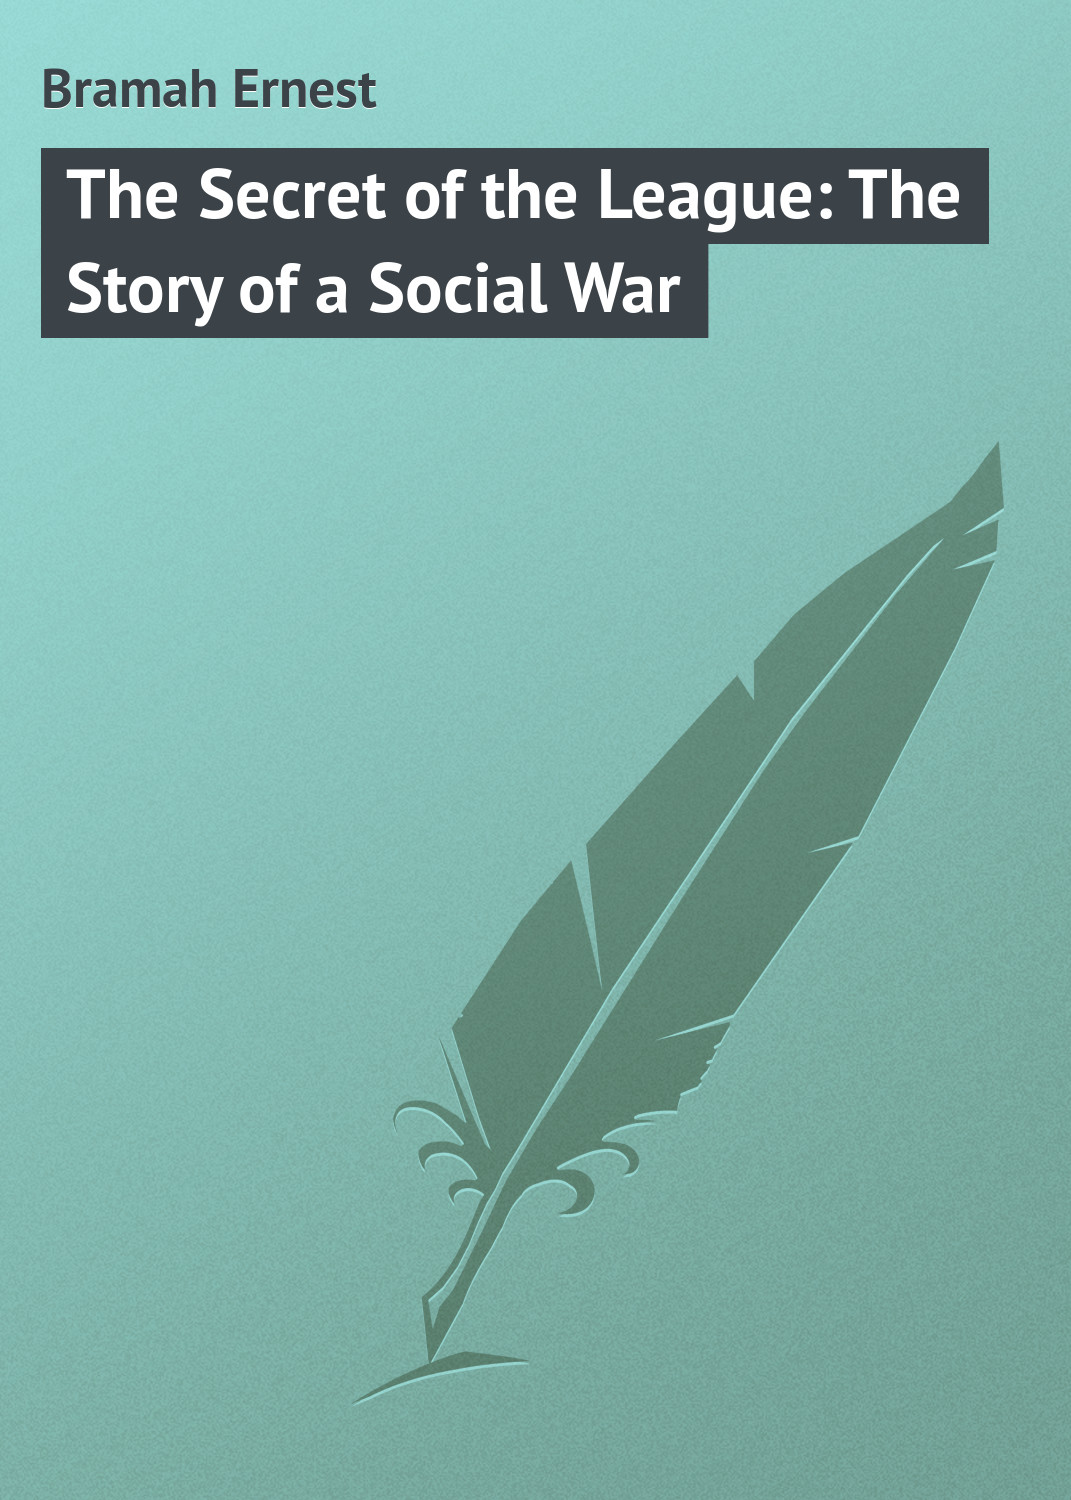 Bramah Ernest The Secret of the League: The Story of a Social War